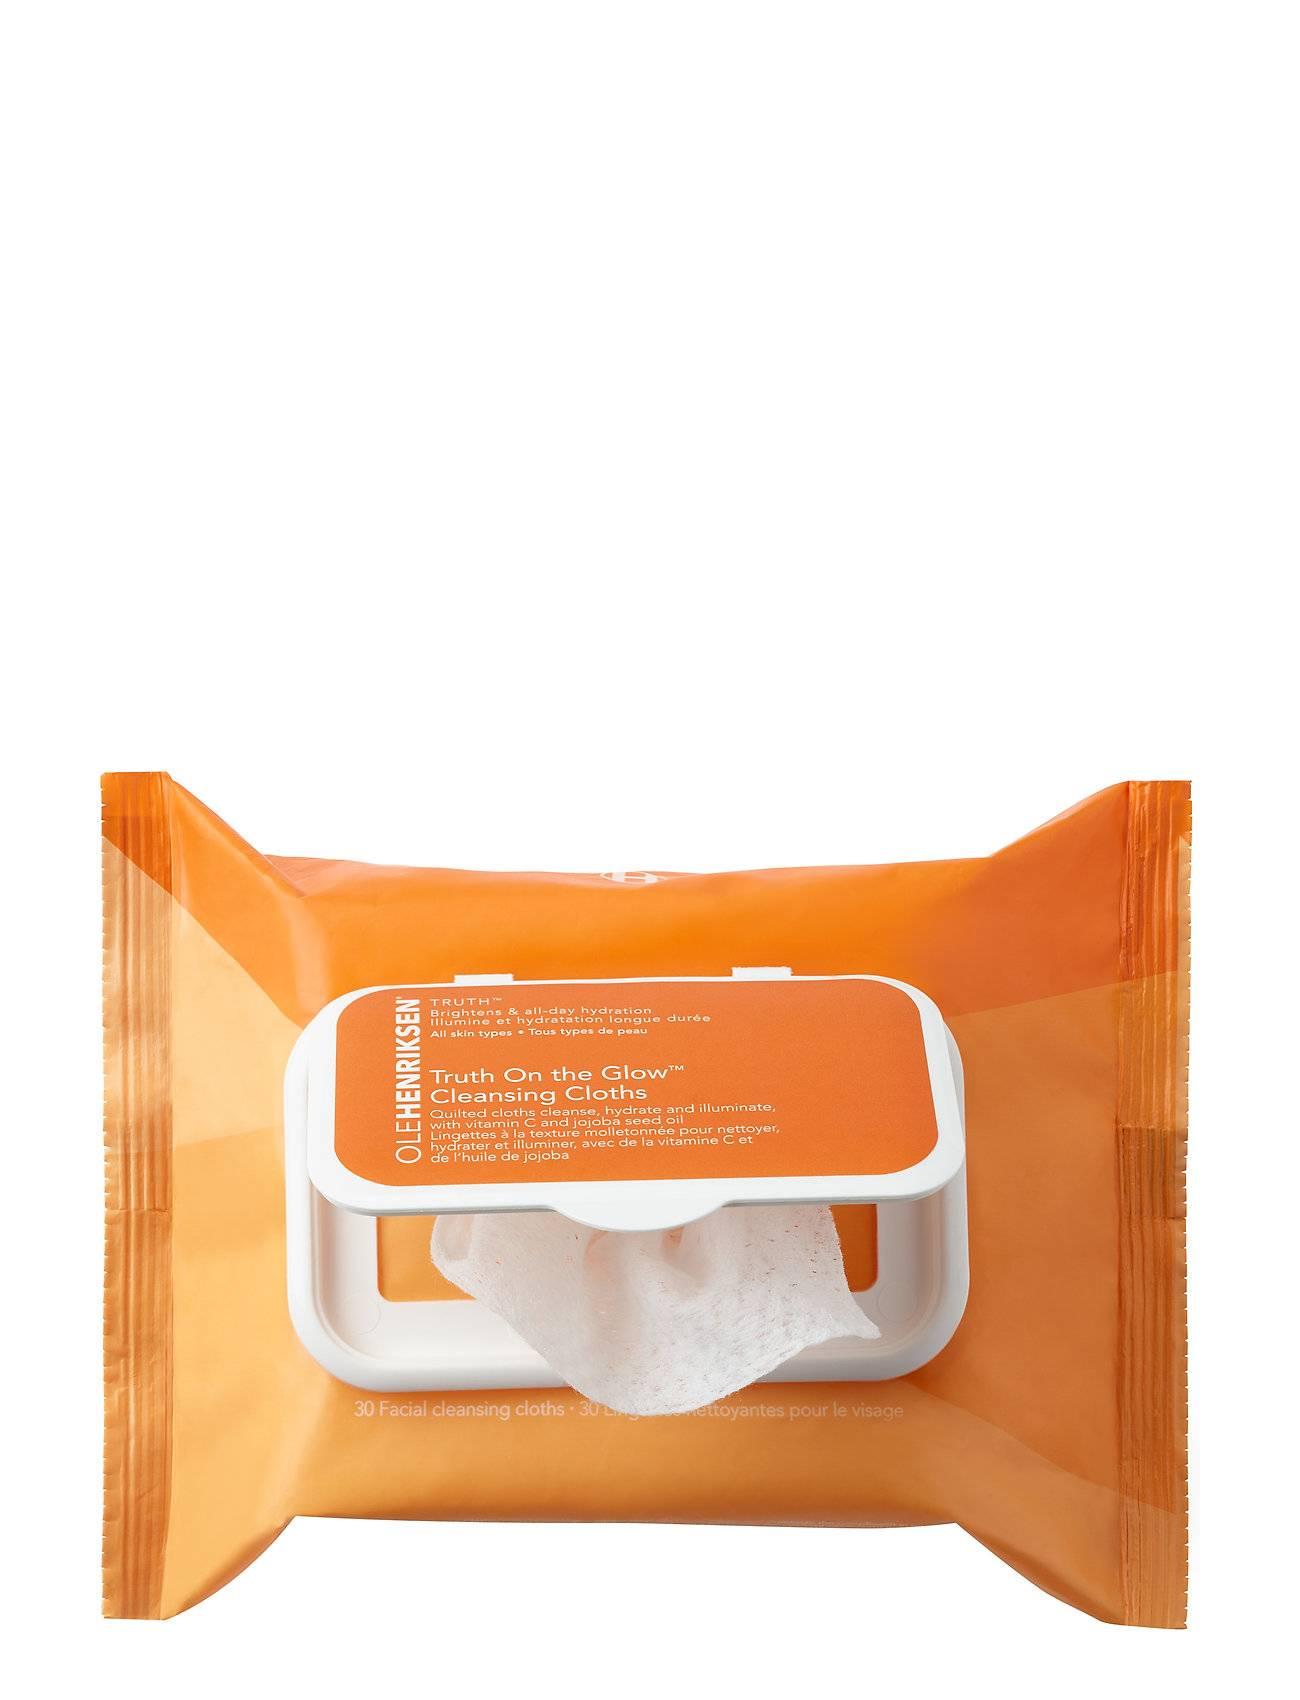 Ole Henriksen Truth Cleansing Cloths